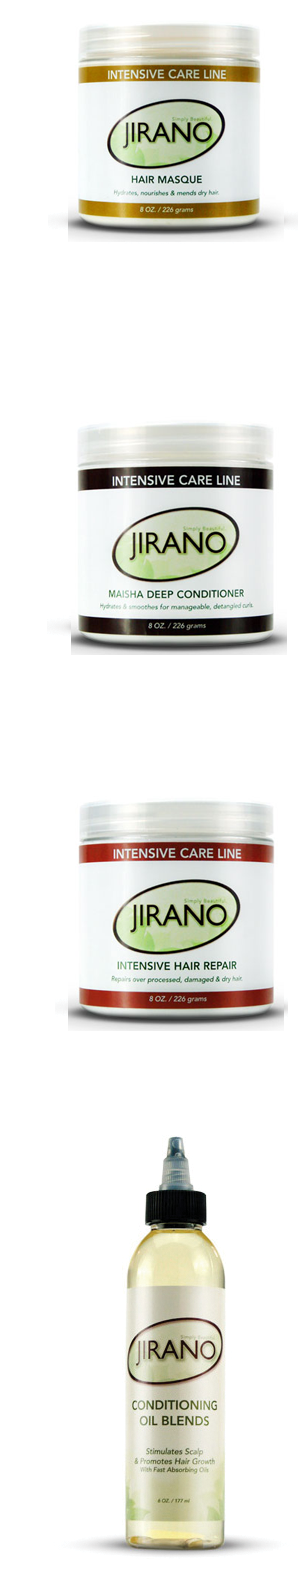 Intensive hair treatments Jirano Curl Care